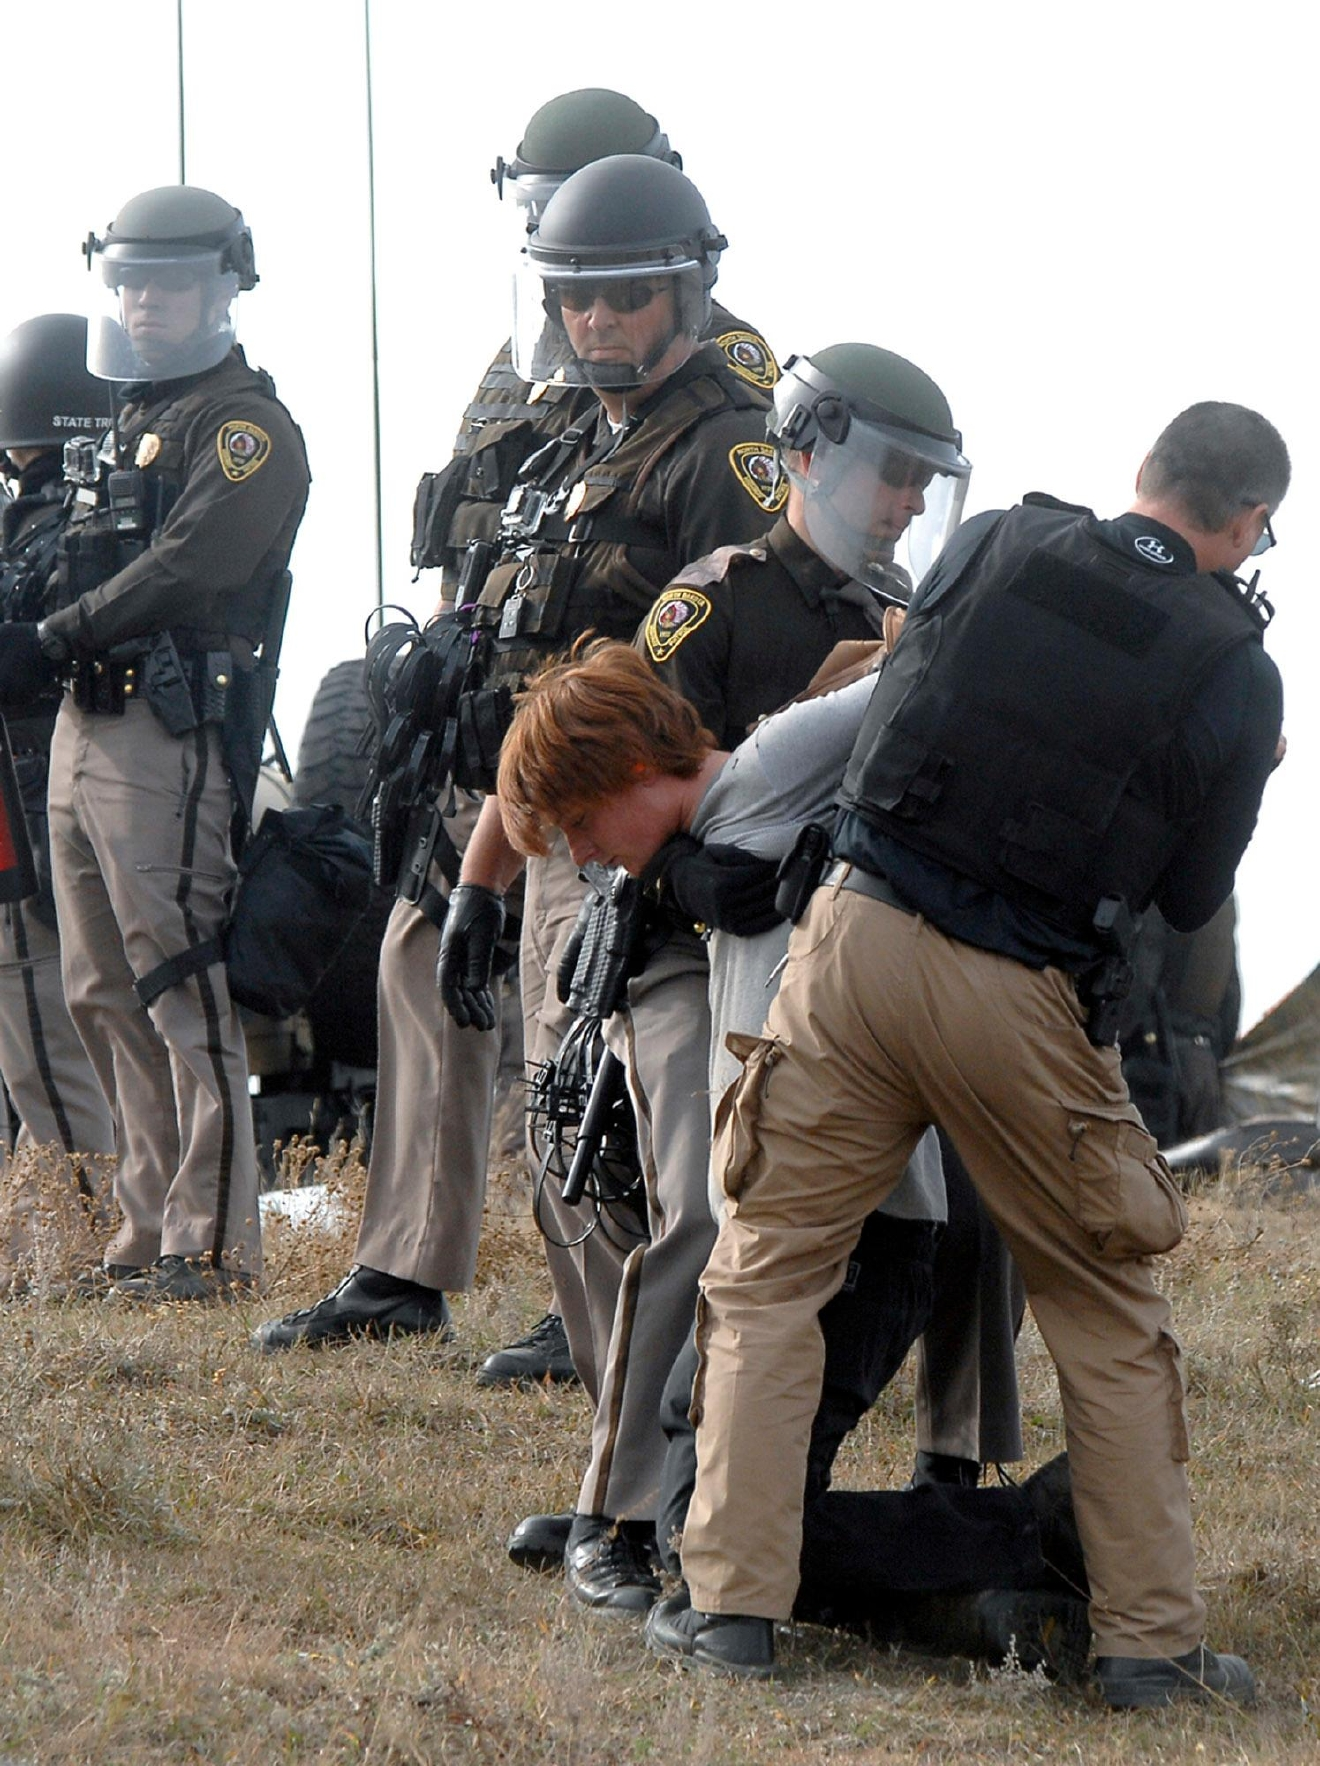 An unidentified Dakota Access Pipeline protester is arrested inside the Front Line Camp as law enforcement surround the camp to remove the protesters from the property and relocated to the overflow camp a few miles south of Highway 1806 in Morton County, N.D., Thursday, Oct. 27, 2016. (Mike McCleary/The Bismarck Tribune via AP)